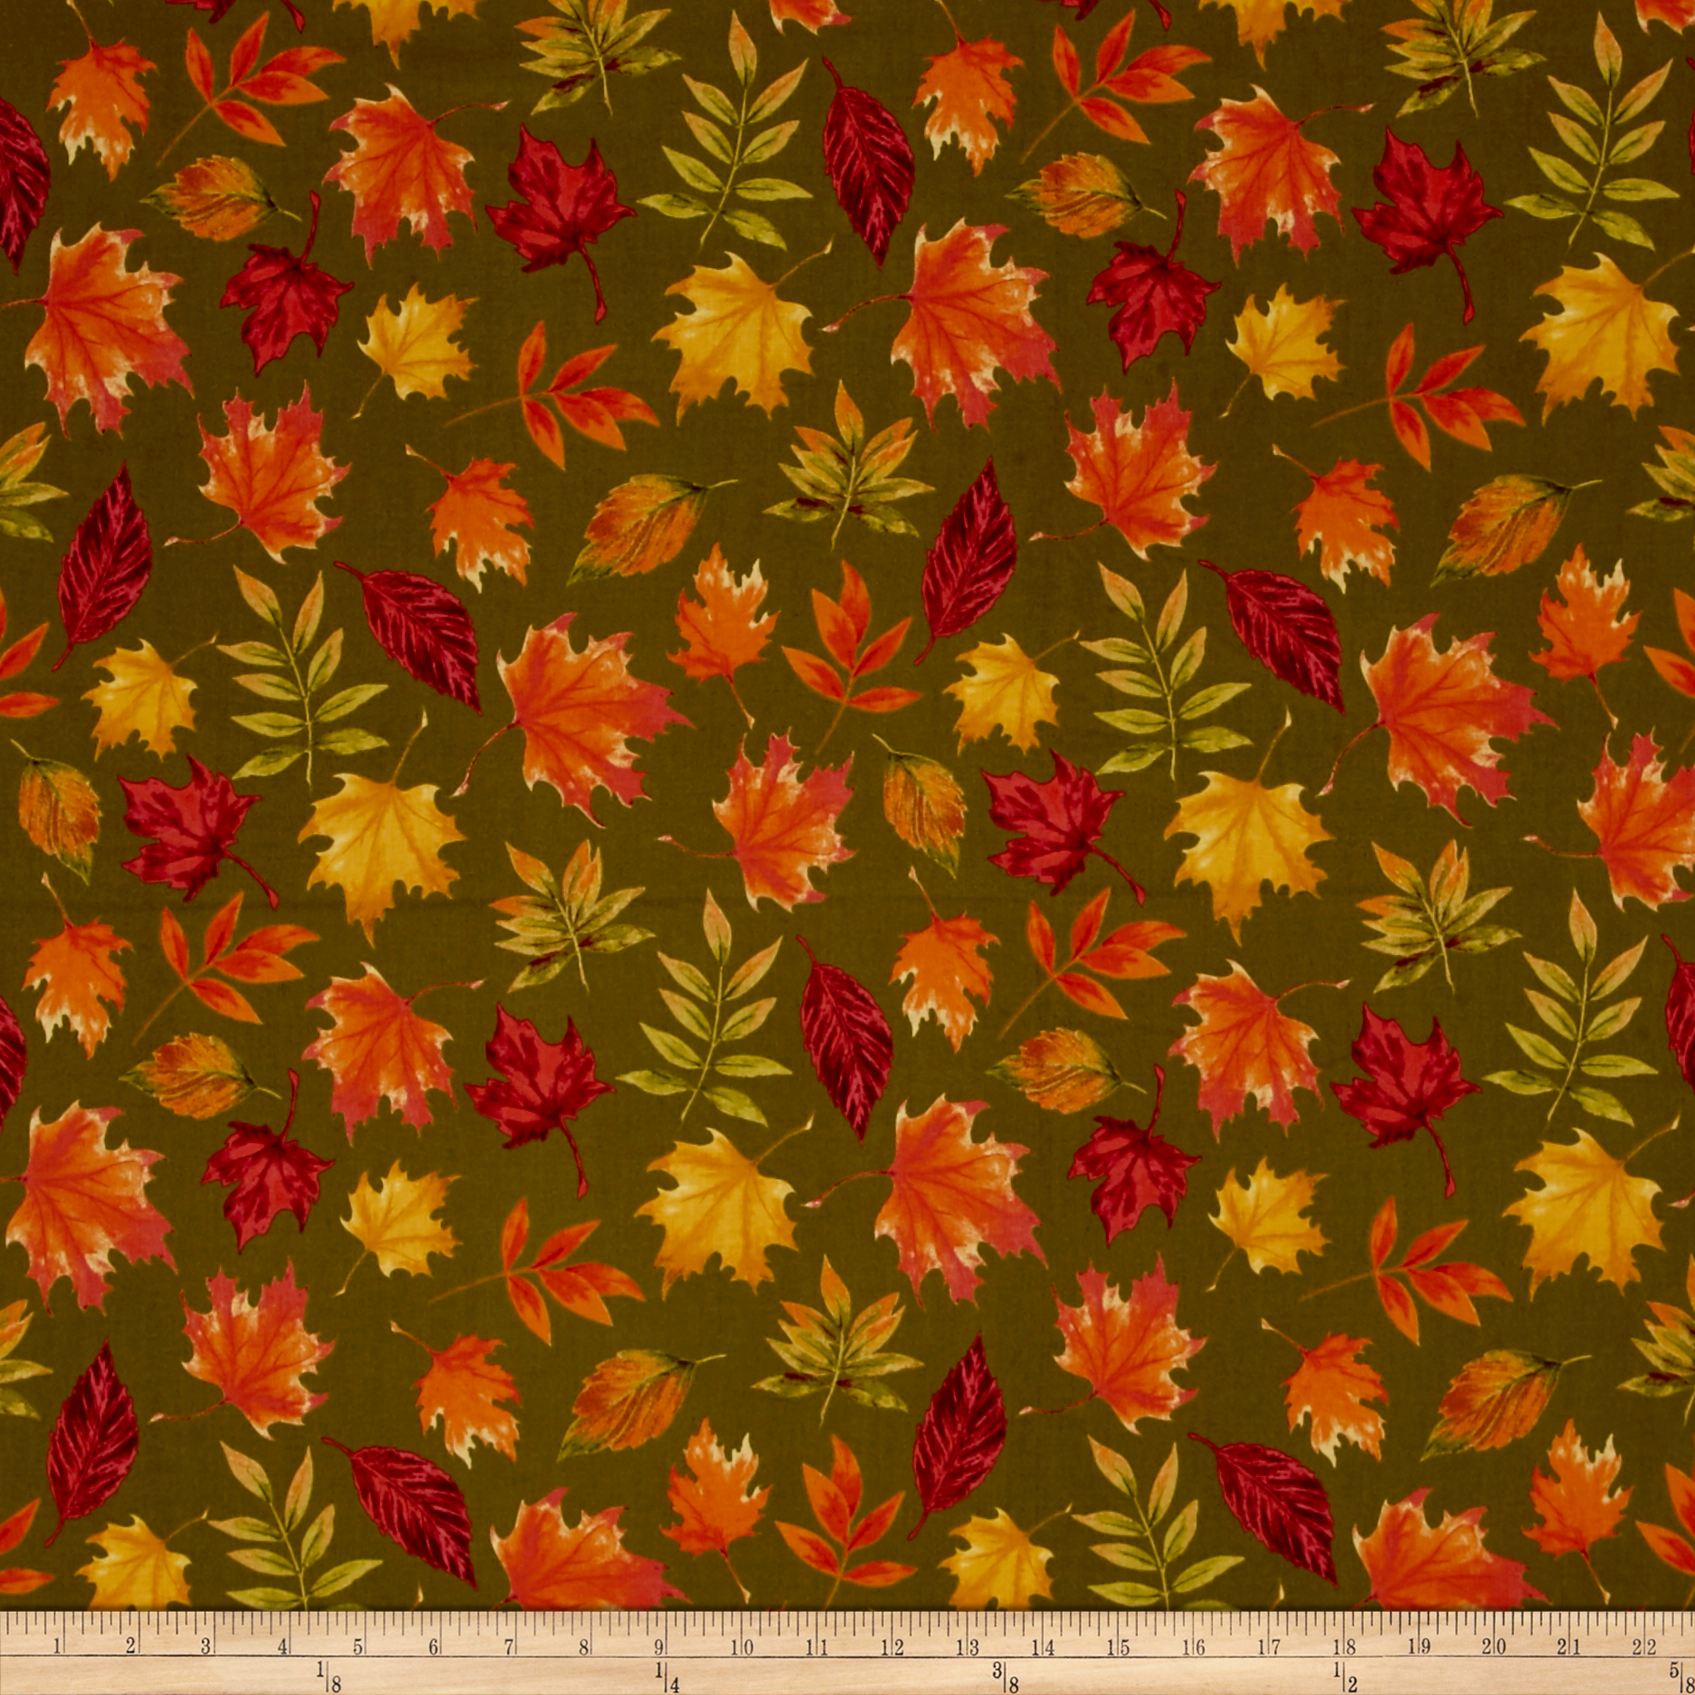 Penny Rose Autumn Hue Leaves Green Fabric by Christensen in USA